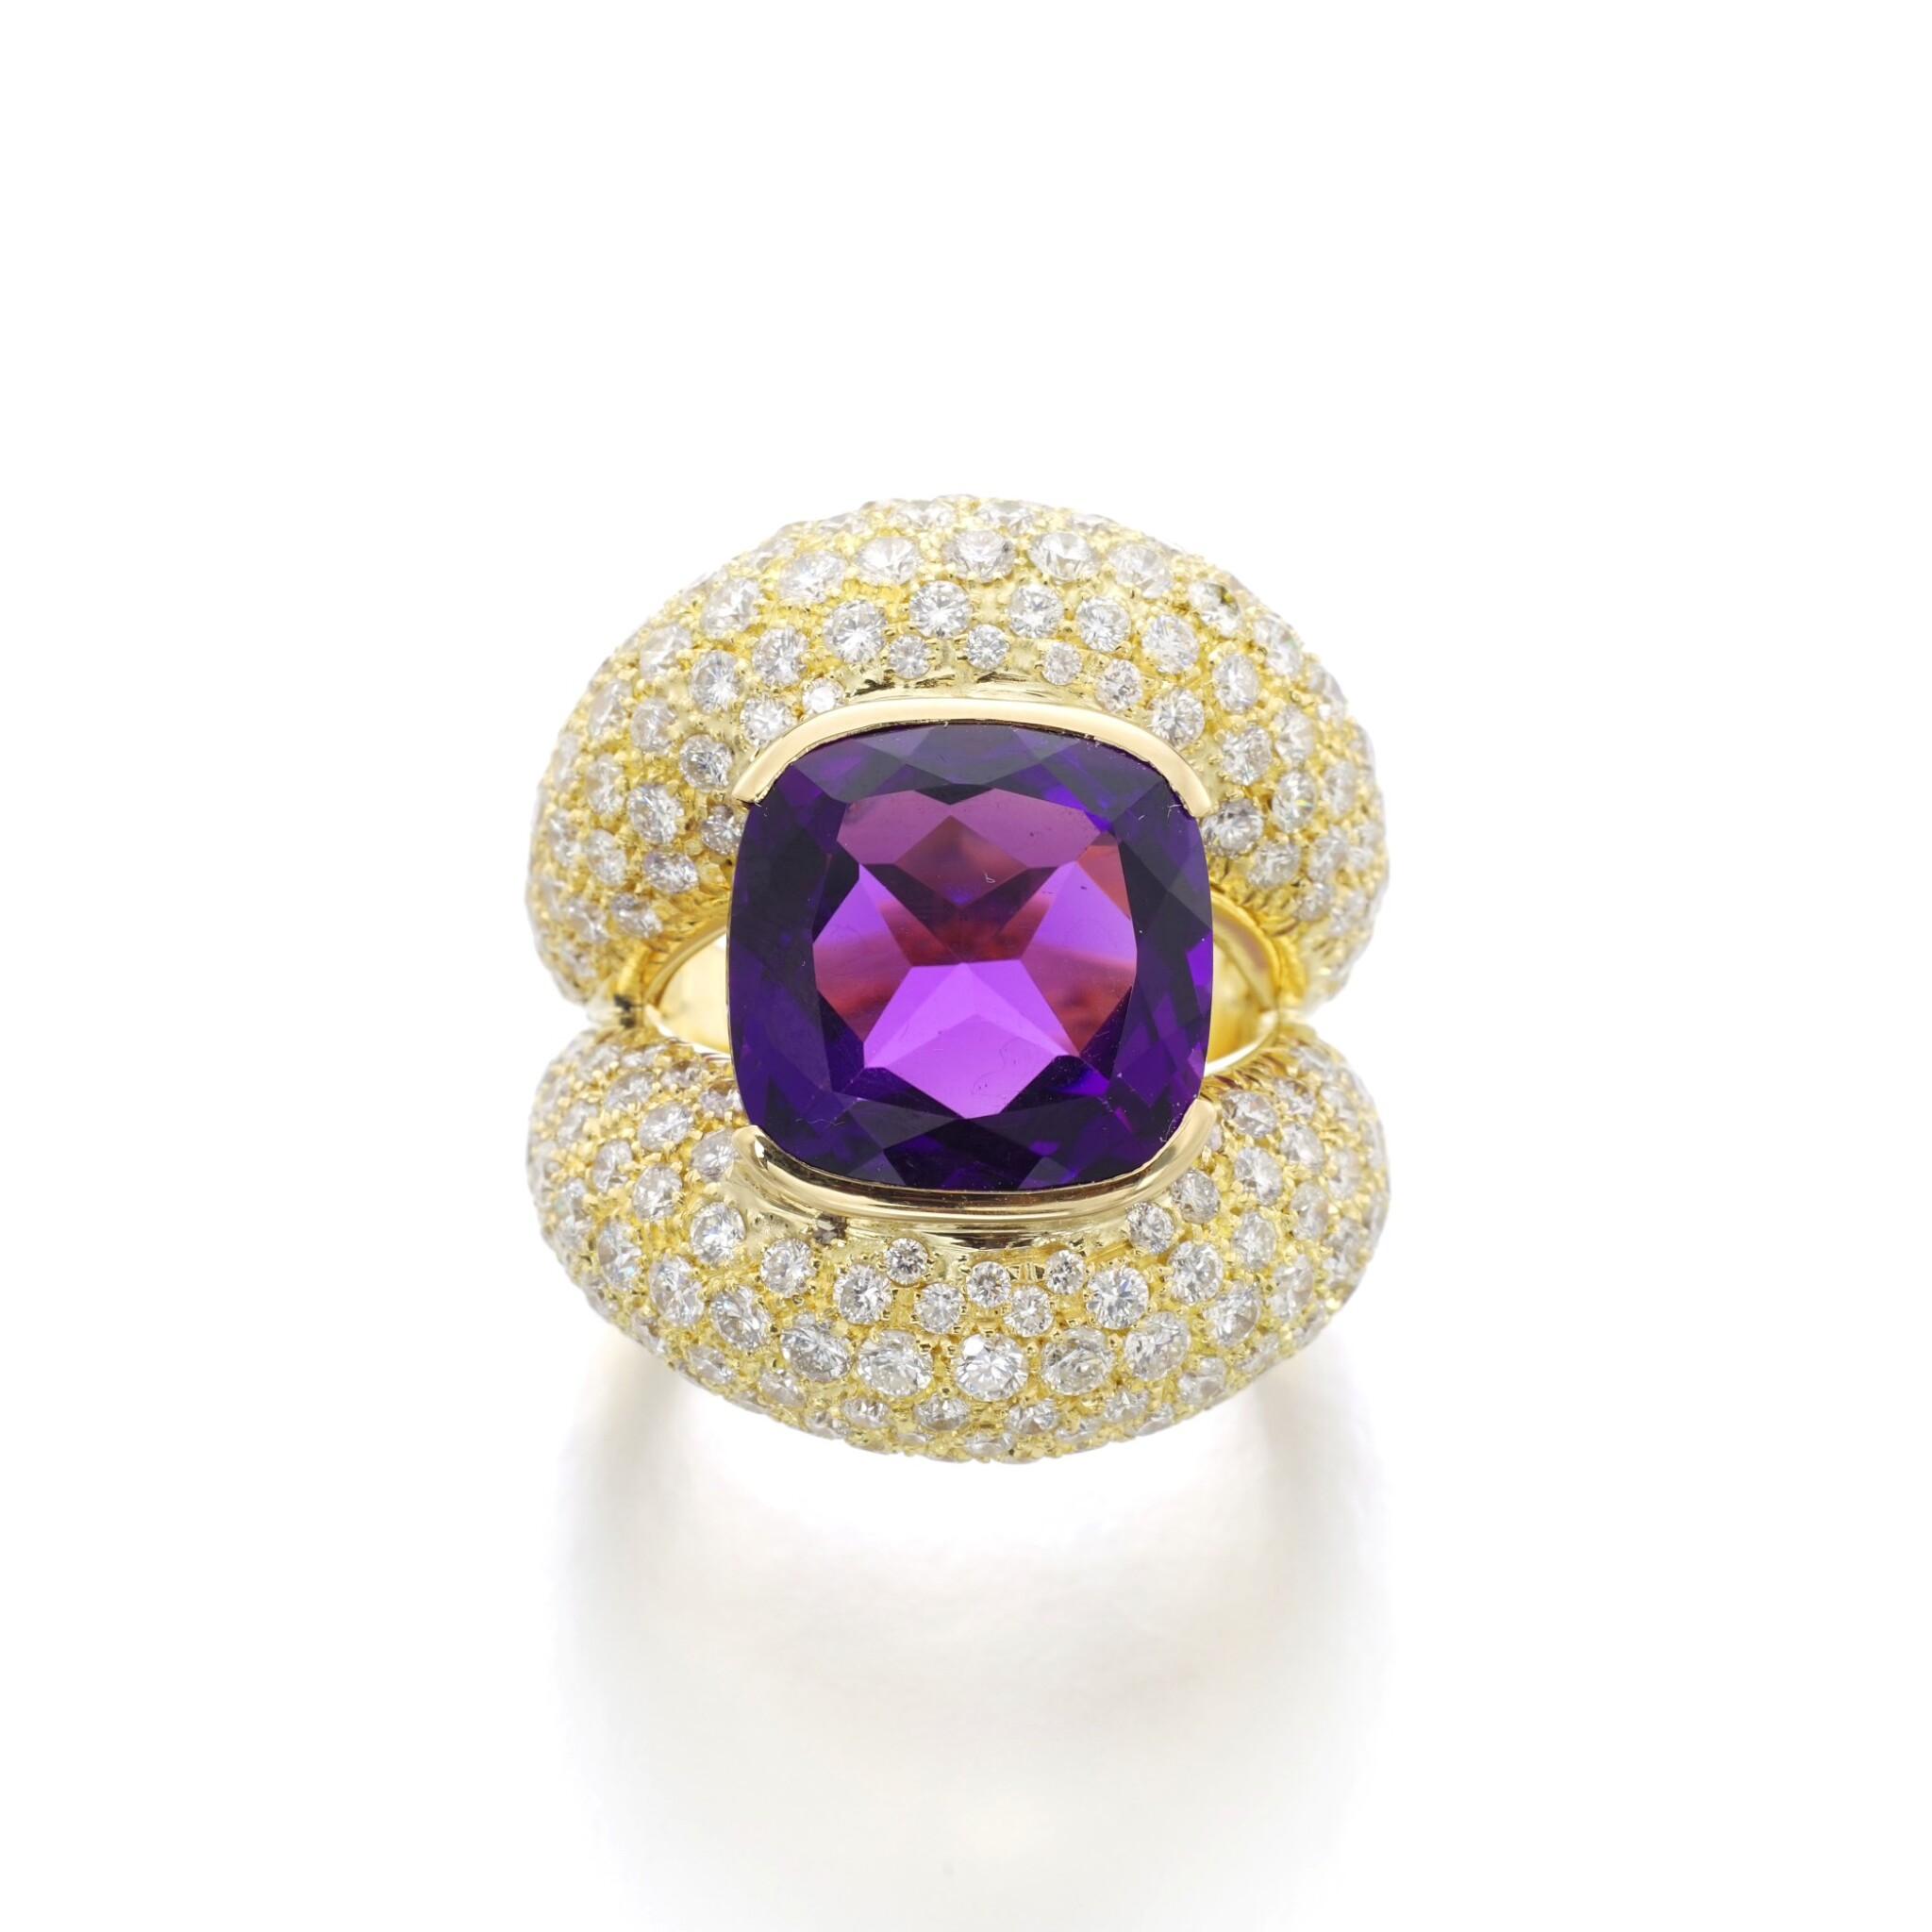 View full screen - View 1 of Lot 3. MICHELE DELLA VALLE | AMETHYST AND DIAMOND RING.